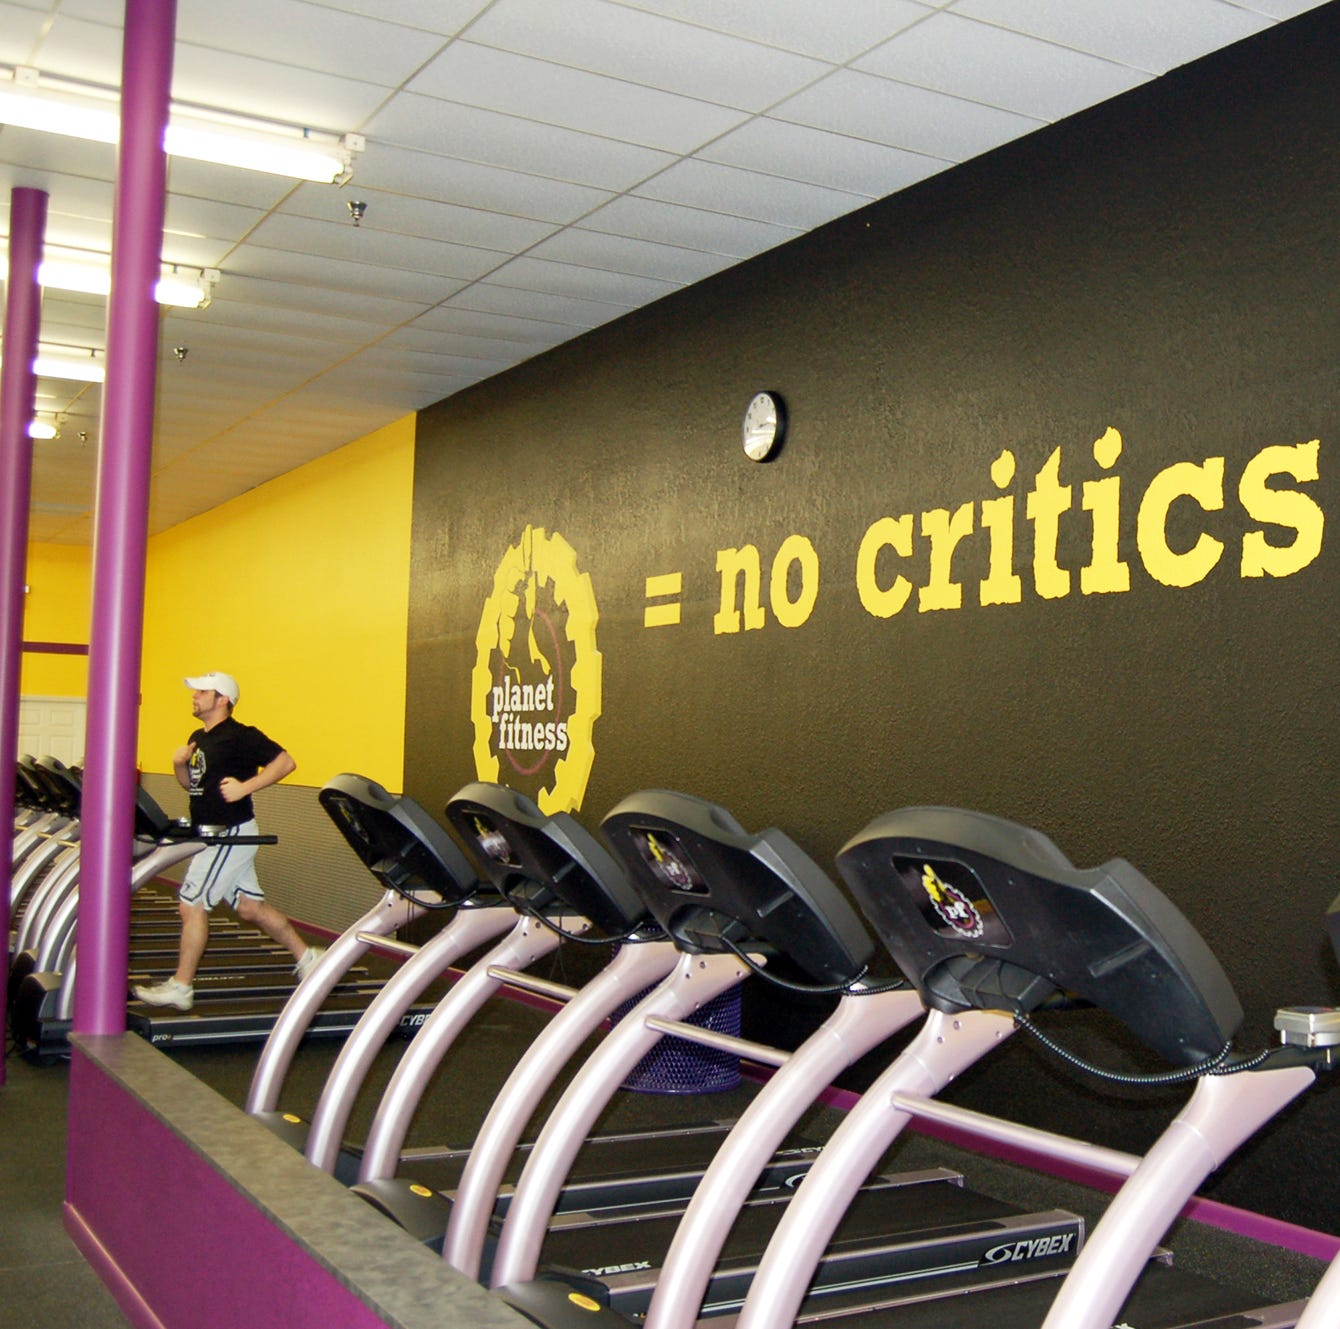 Lawsuit: Planet Fitness denied woman's membership because her disability was a 'liability'